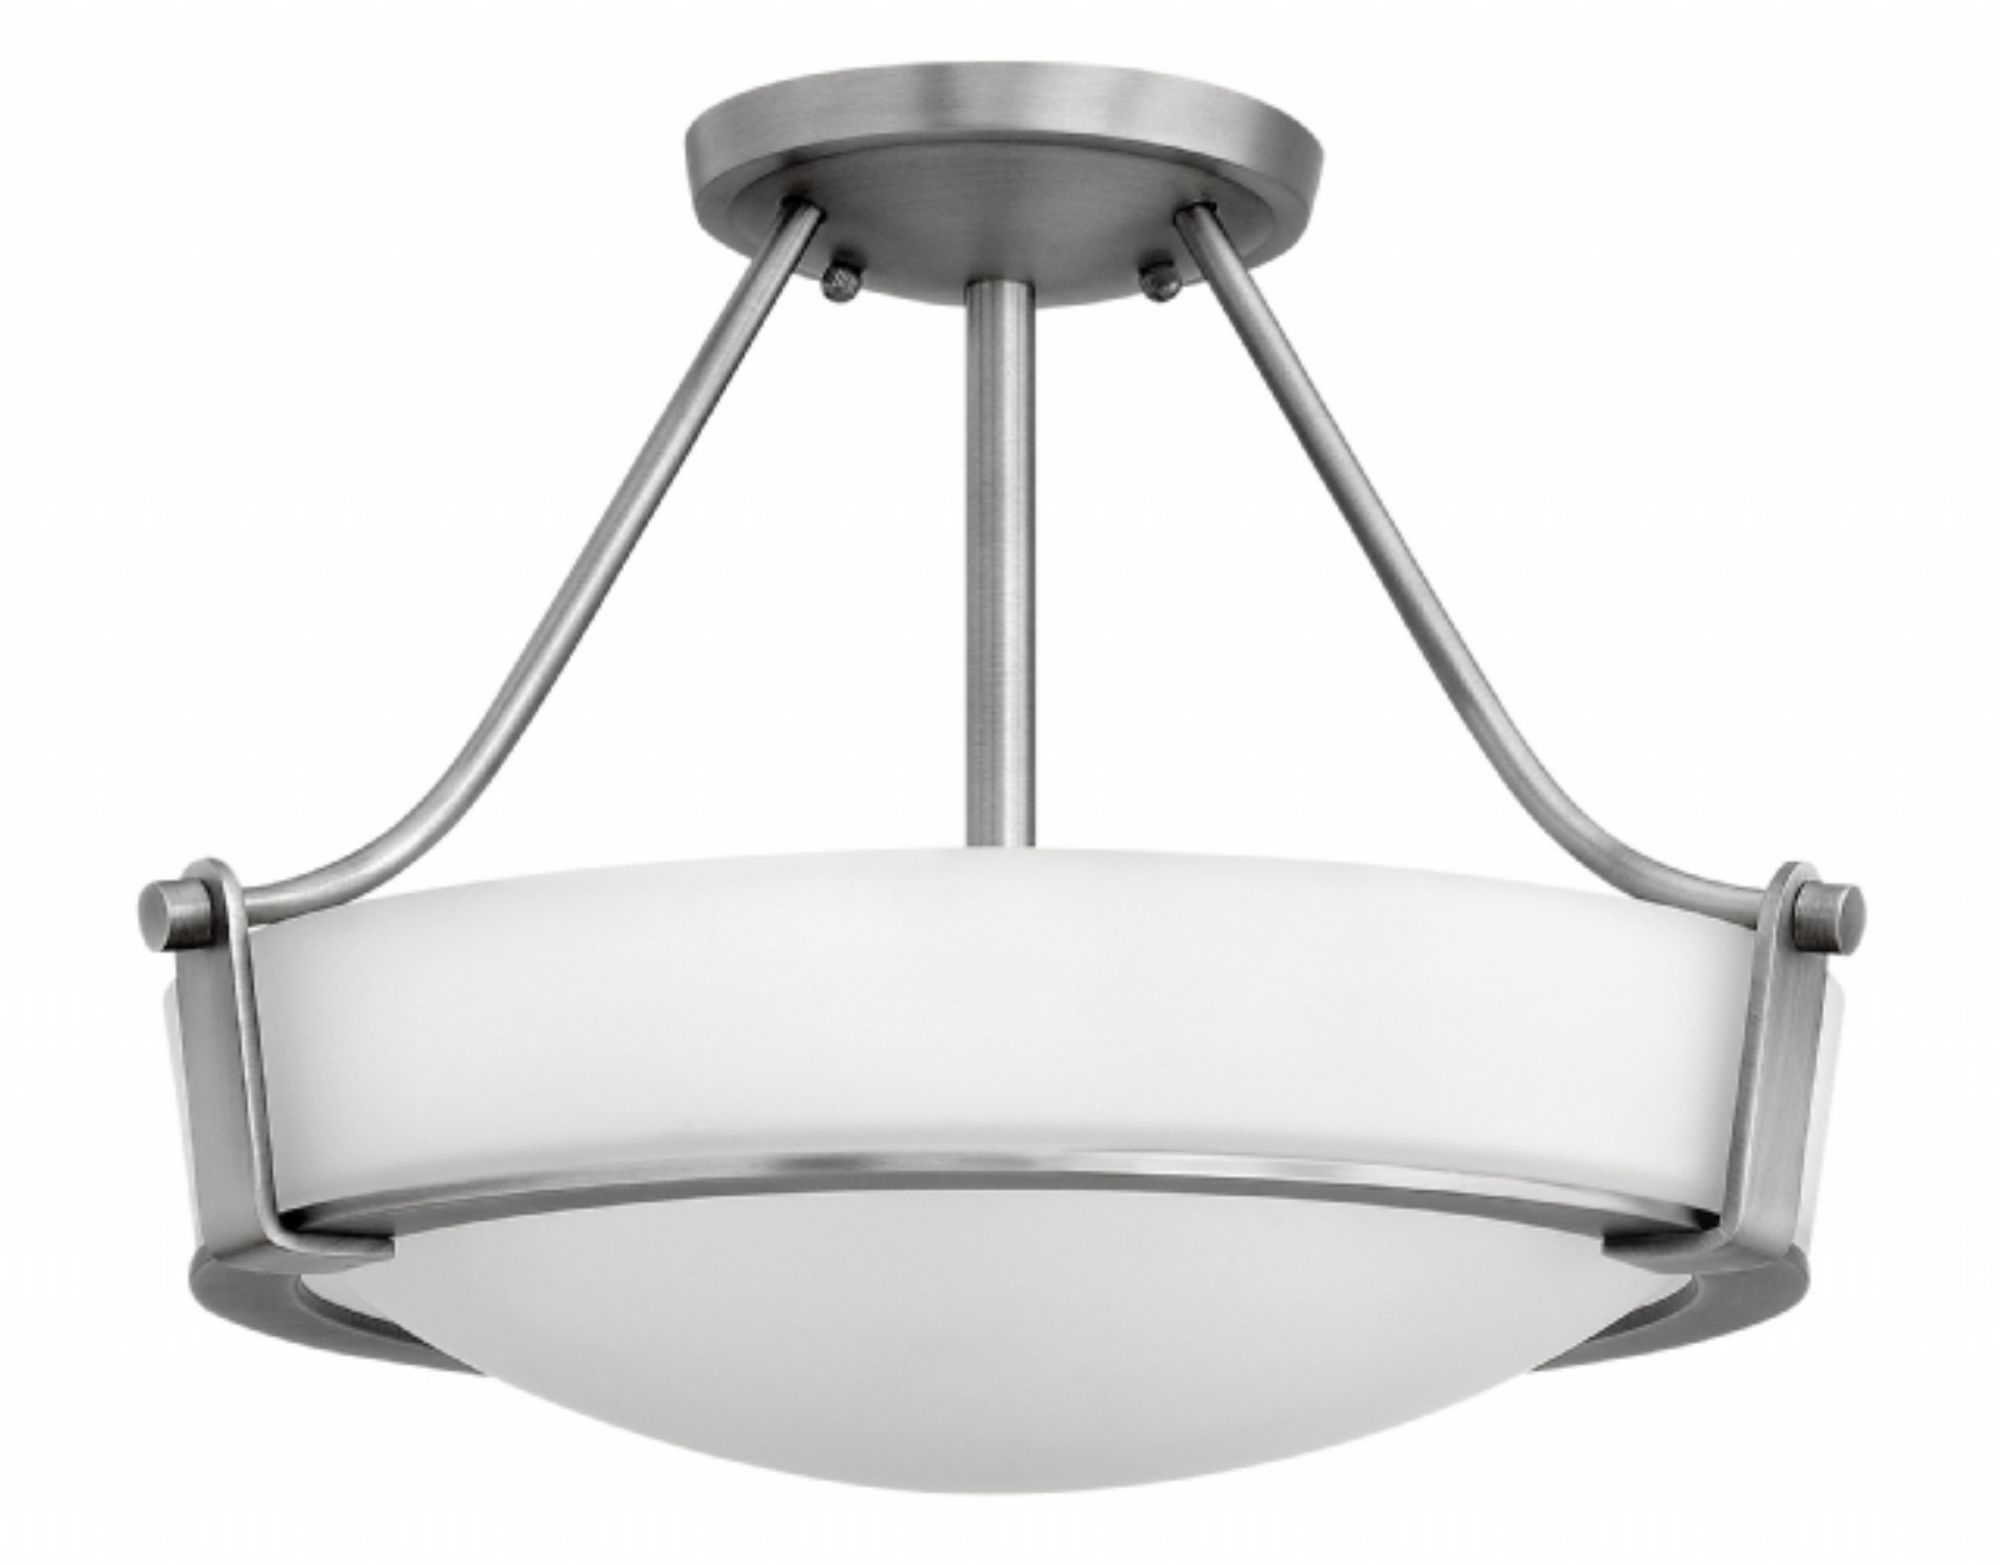 2018 Antique Nickel Hathaway > Interior Ceiling Mount Intended For Flush Mount Hinkley Lighting (View 2 of 20)